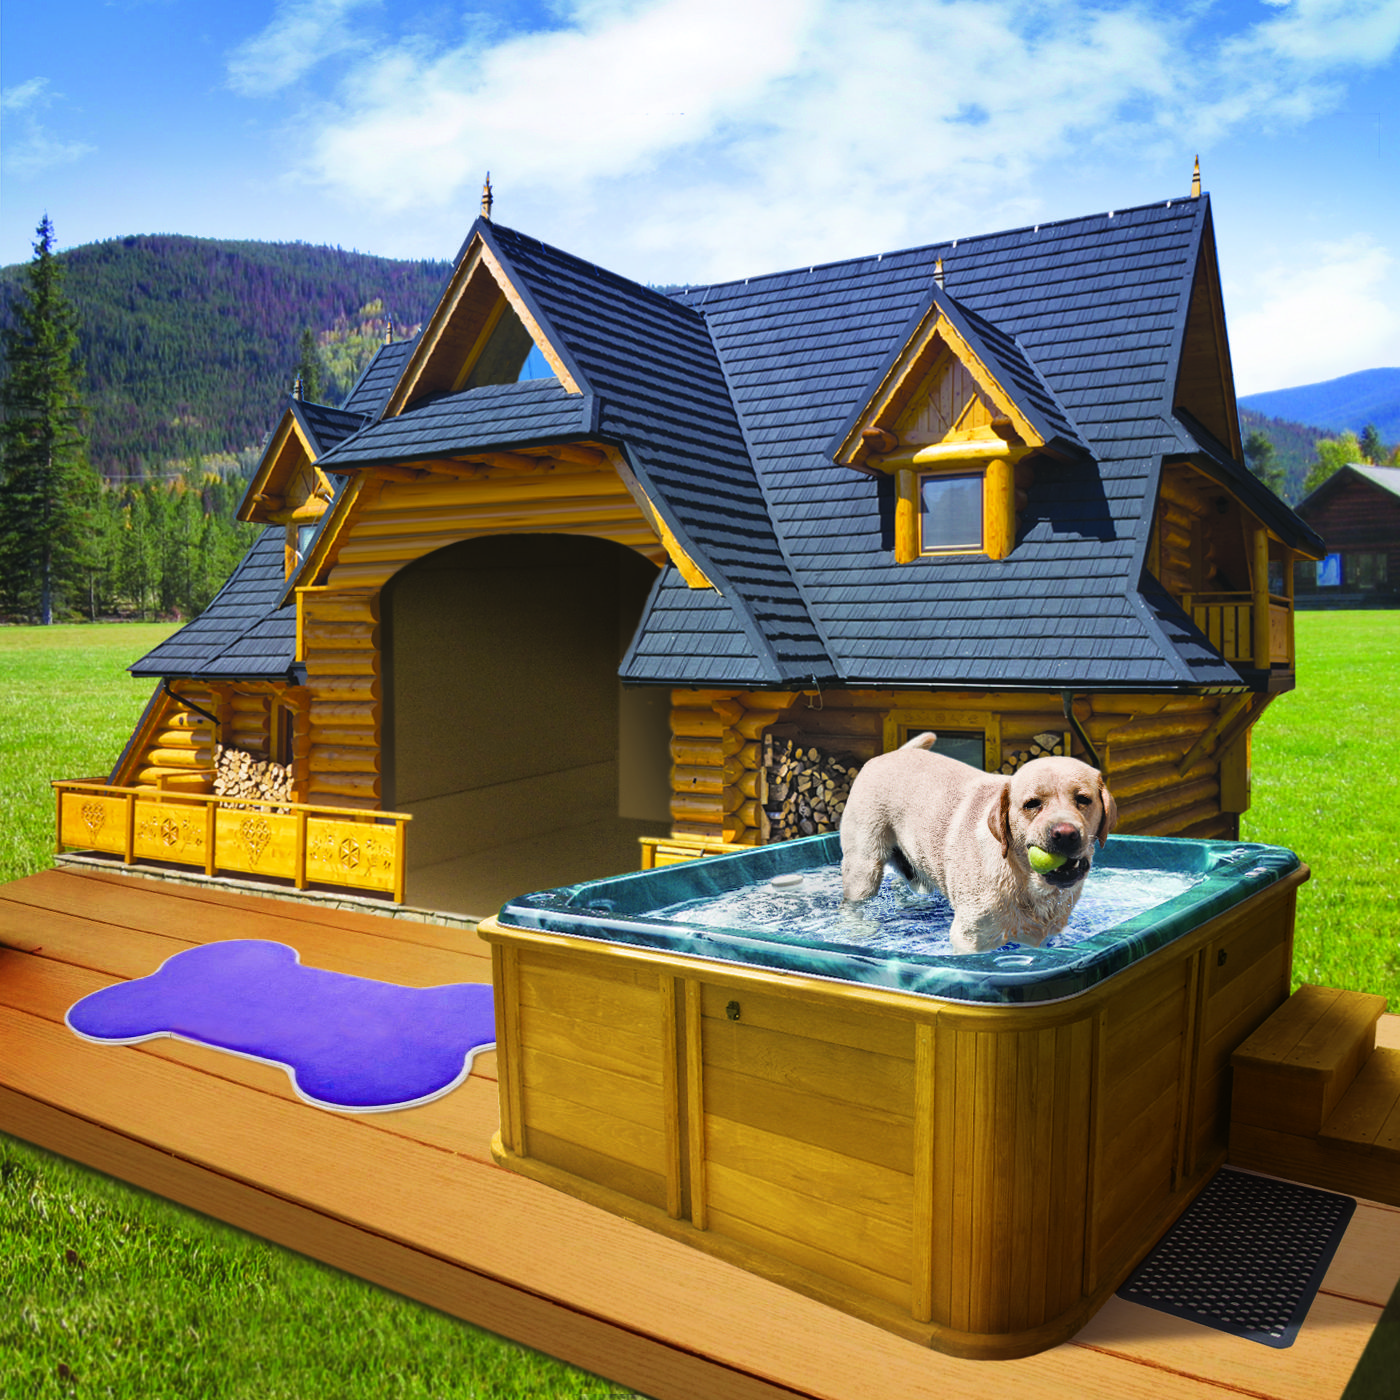 The Lodge Your dog will love to rest and unwind in this